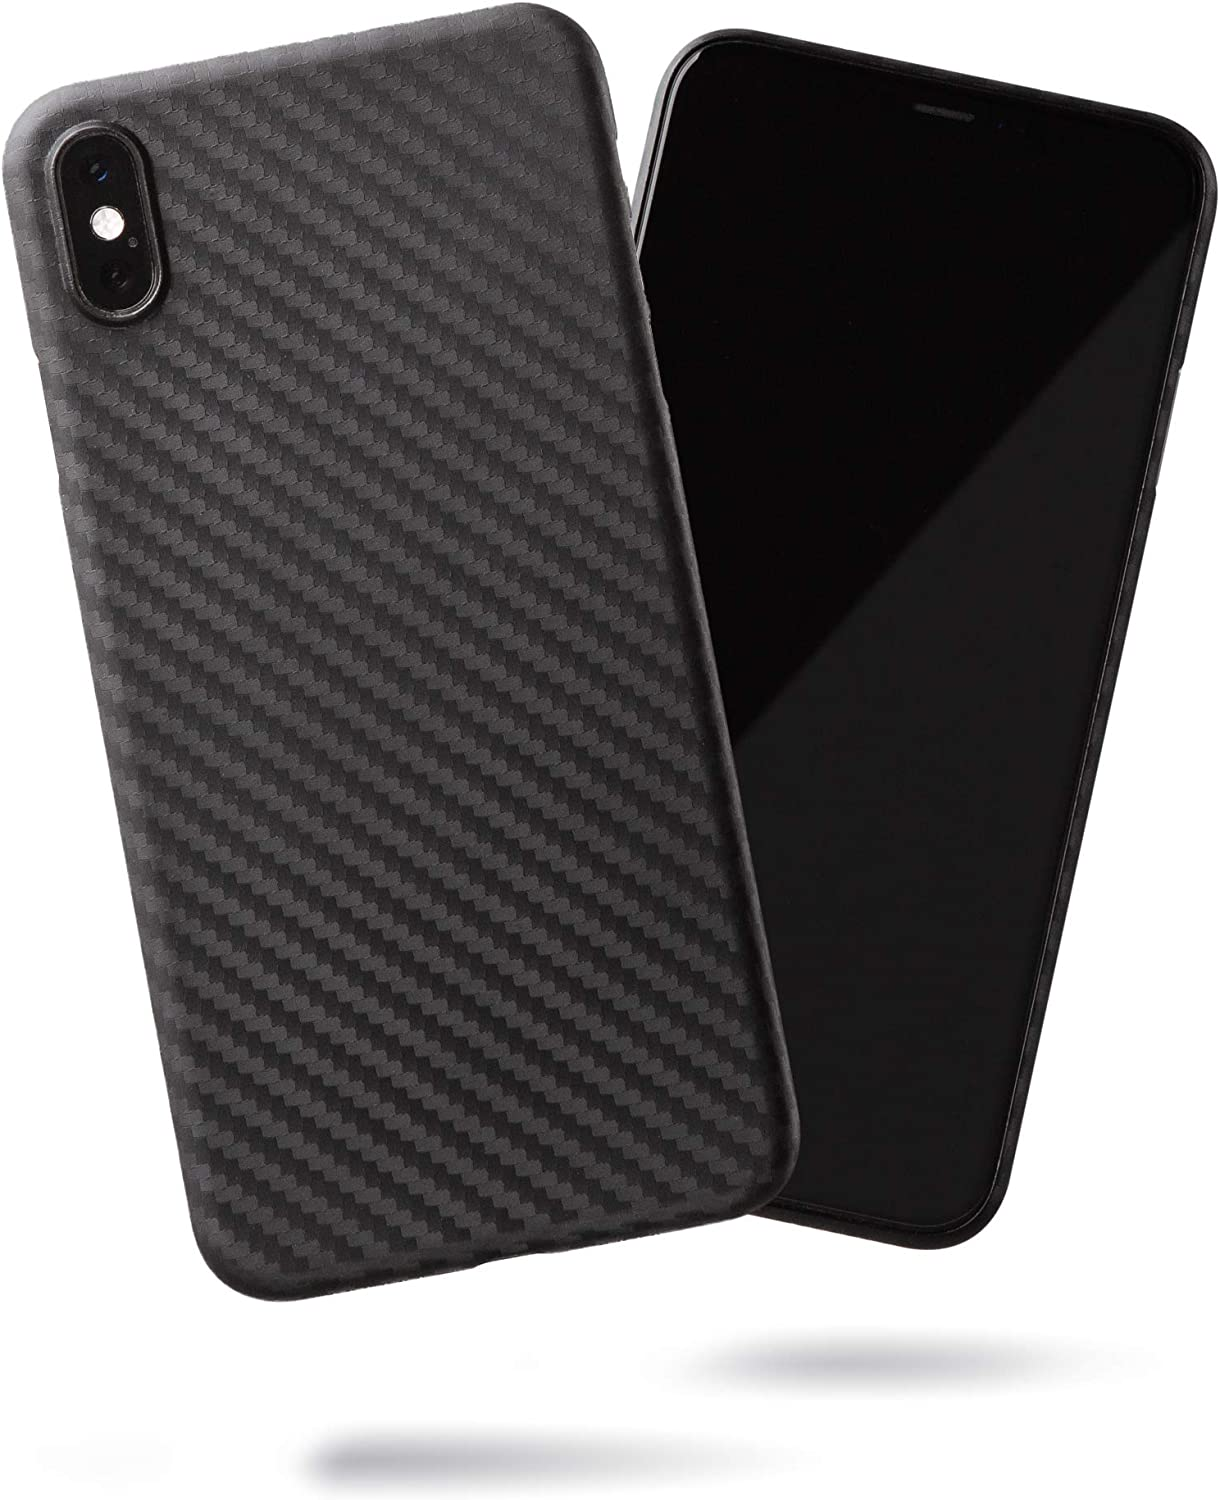 SteepLab Super Slim Minimalist Case - The Ultra Thin Case for iPhone Xs Max (Carbon Fiber)